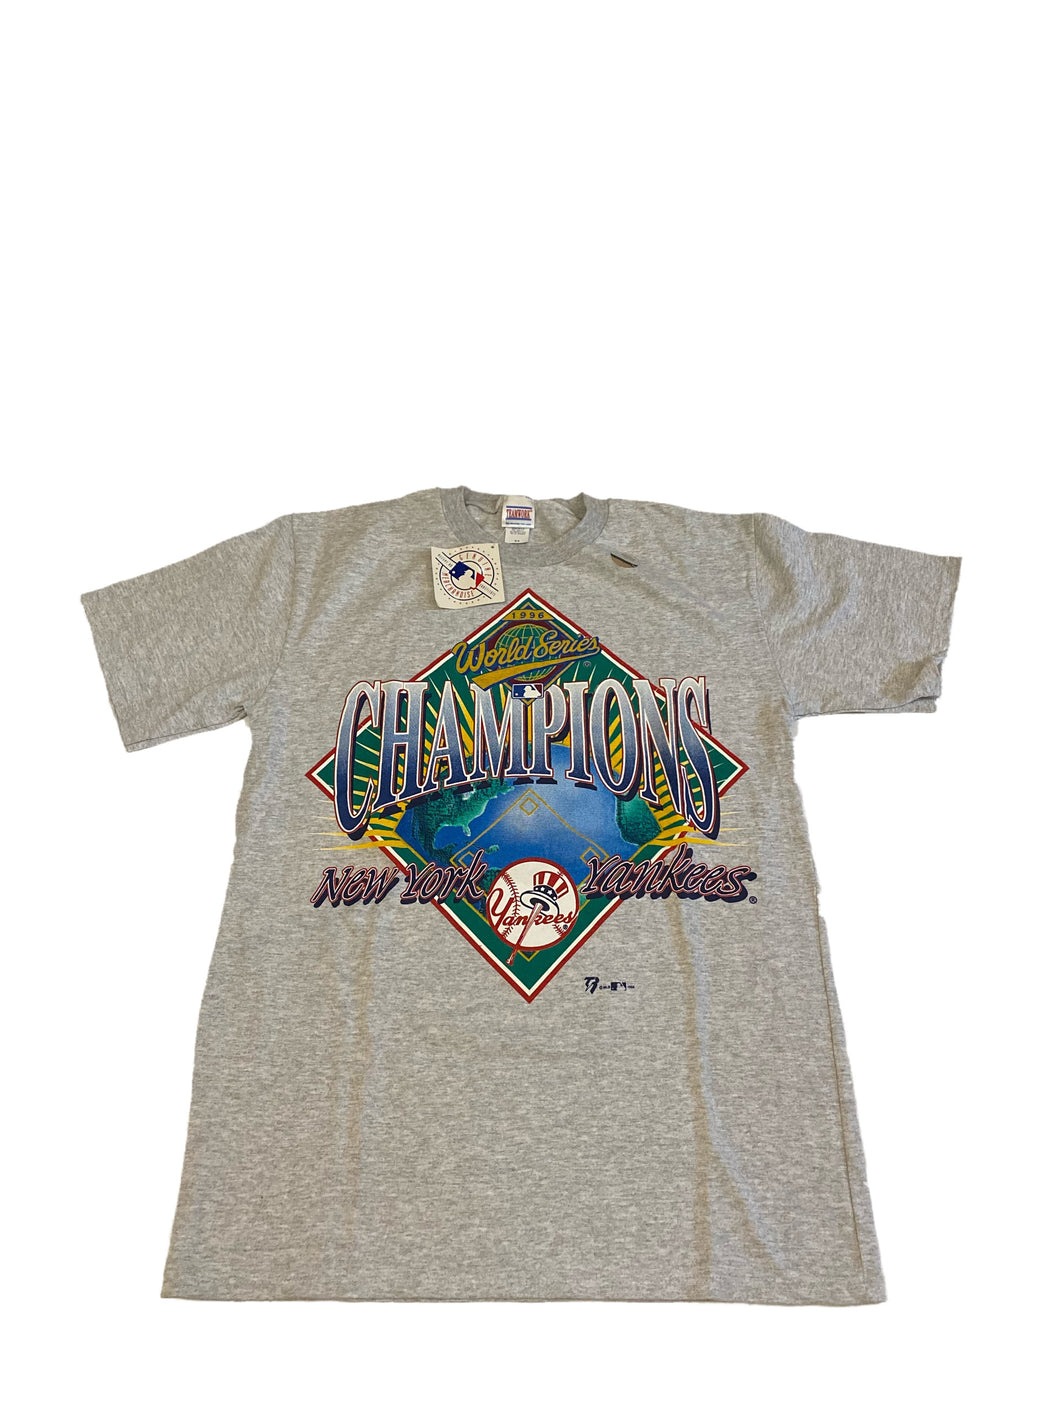 1996 New York Yankees World Series Tee